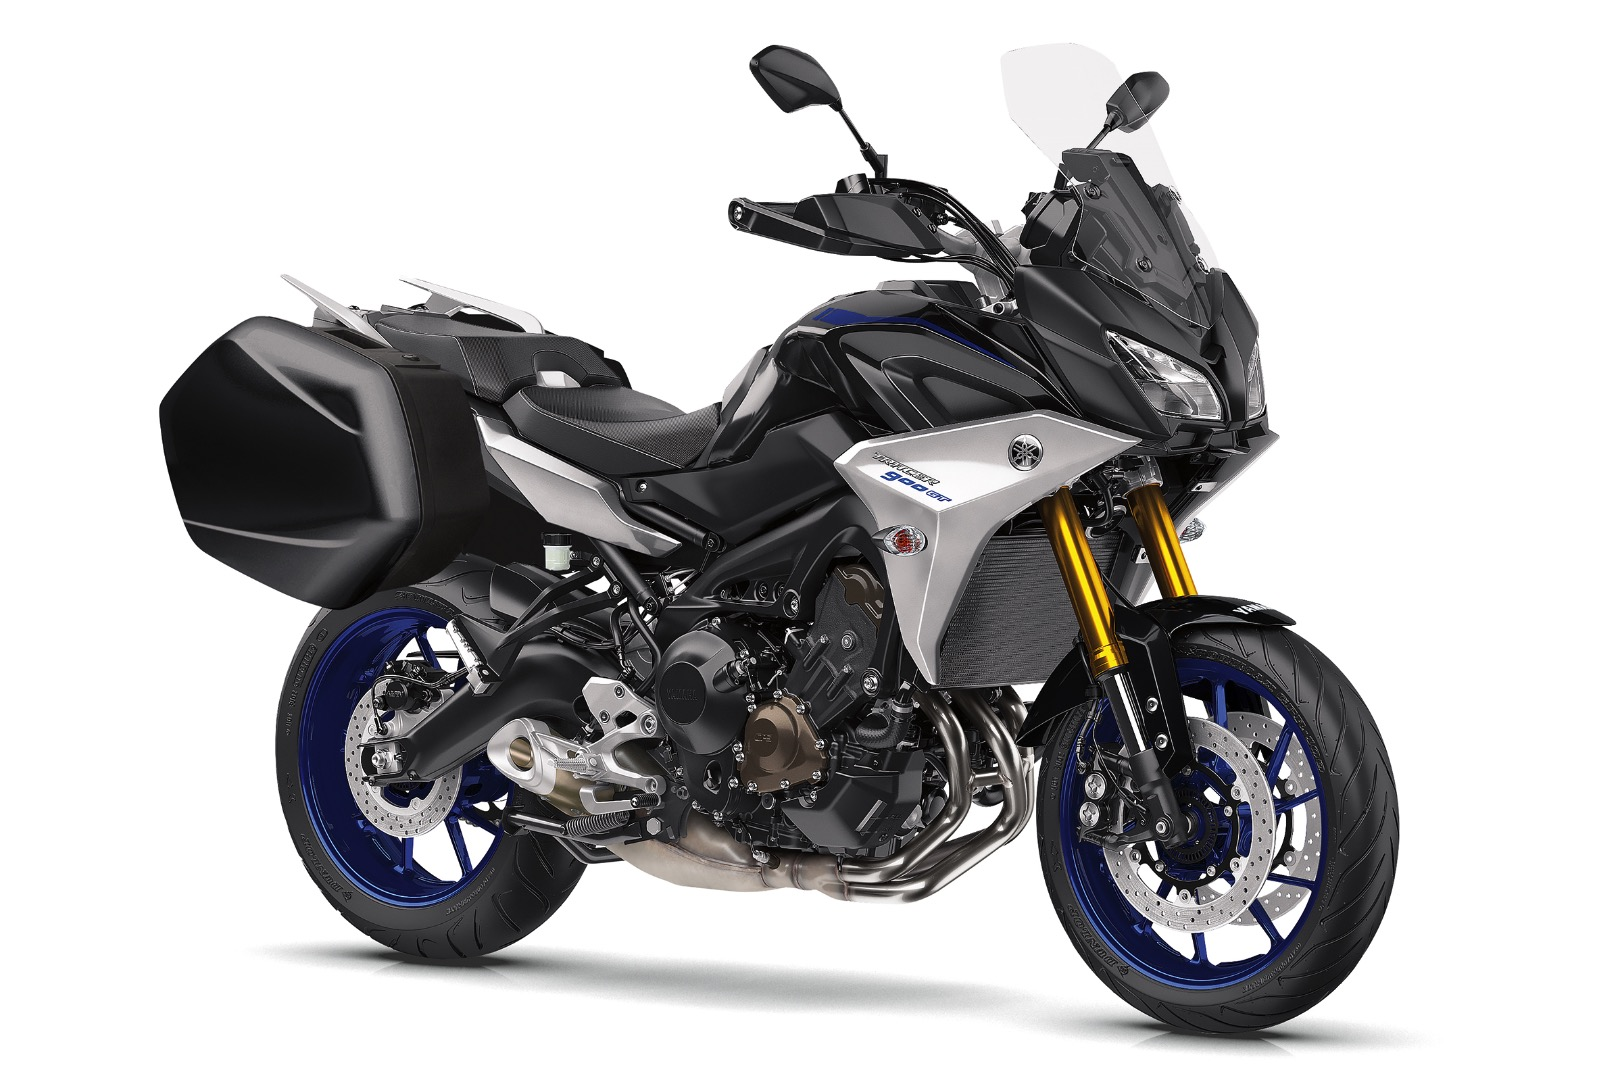 2019 Yamaha Tracer 900 GT First Look - 3/4 view